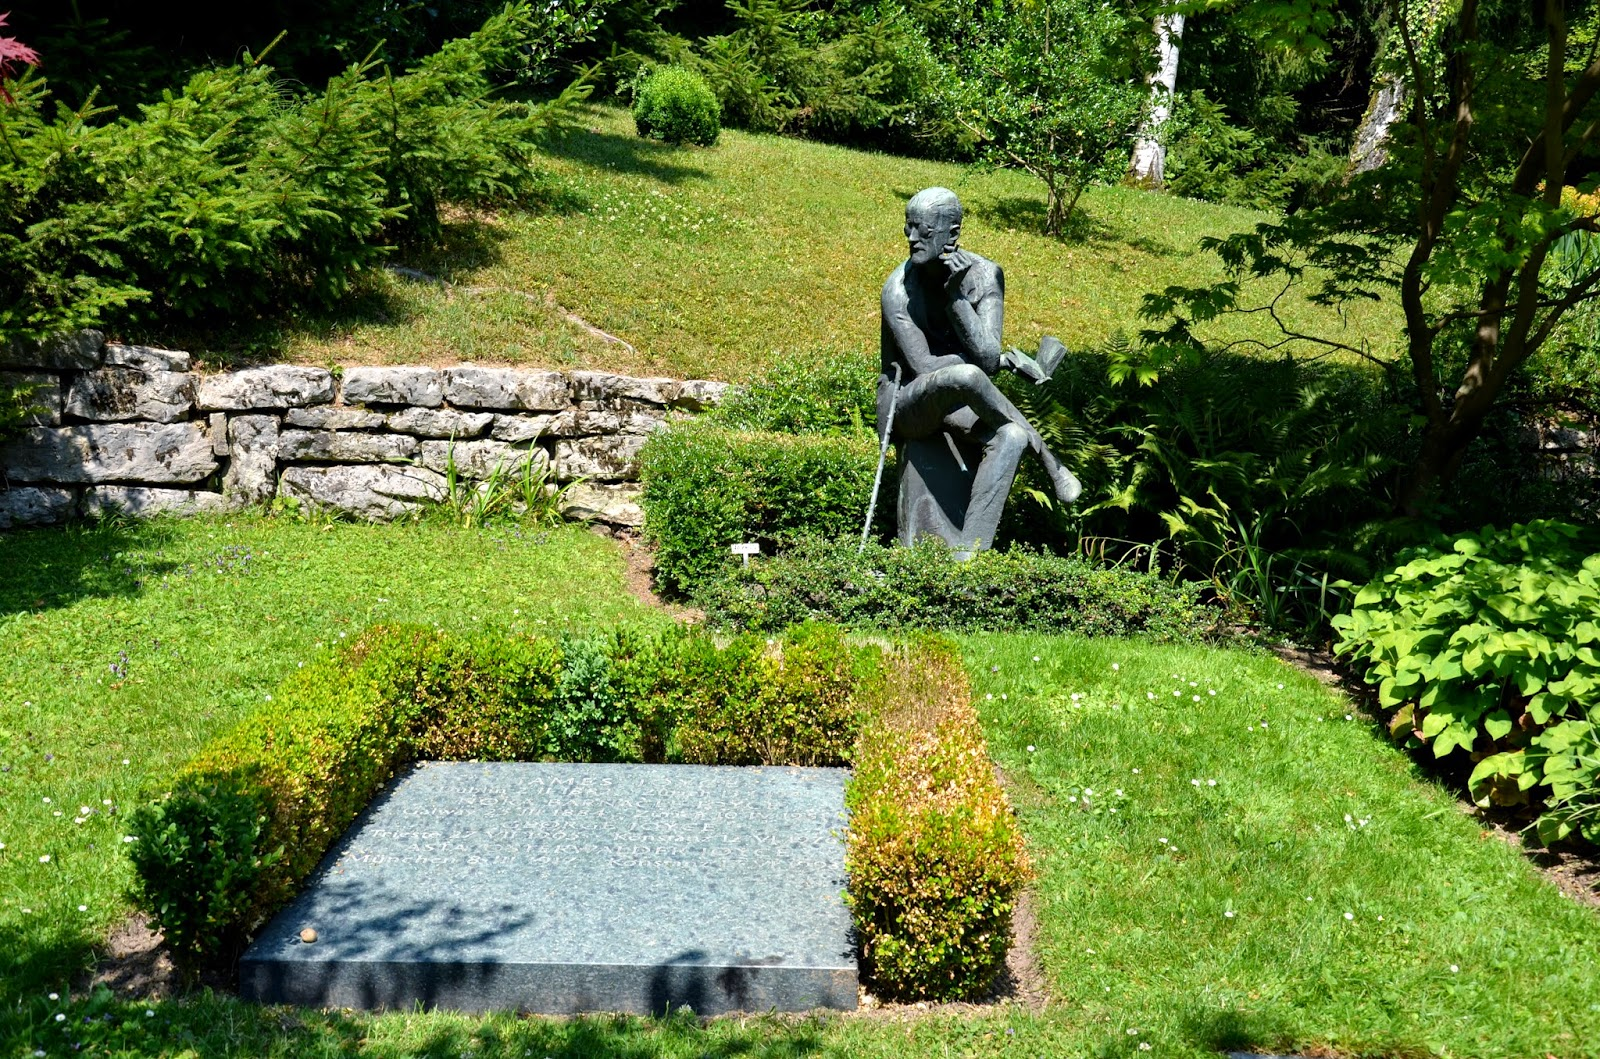 baugh s blog photo essay the grave of james joyce in zurich james and nora liked the situation in the french capital and decided to settle there they spent 20 years in paris finally leaving in late 1940 to escape